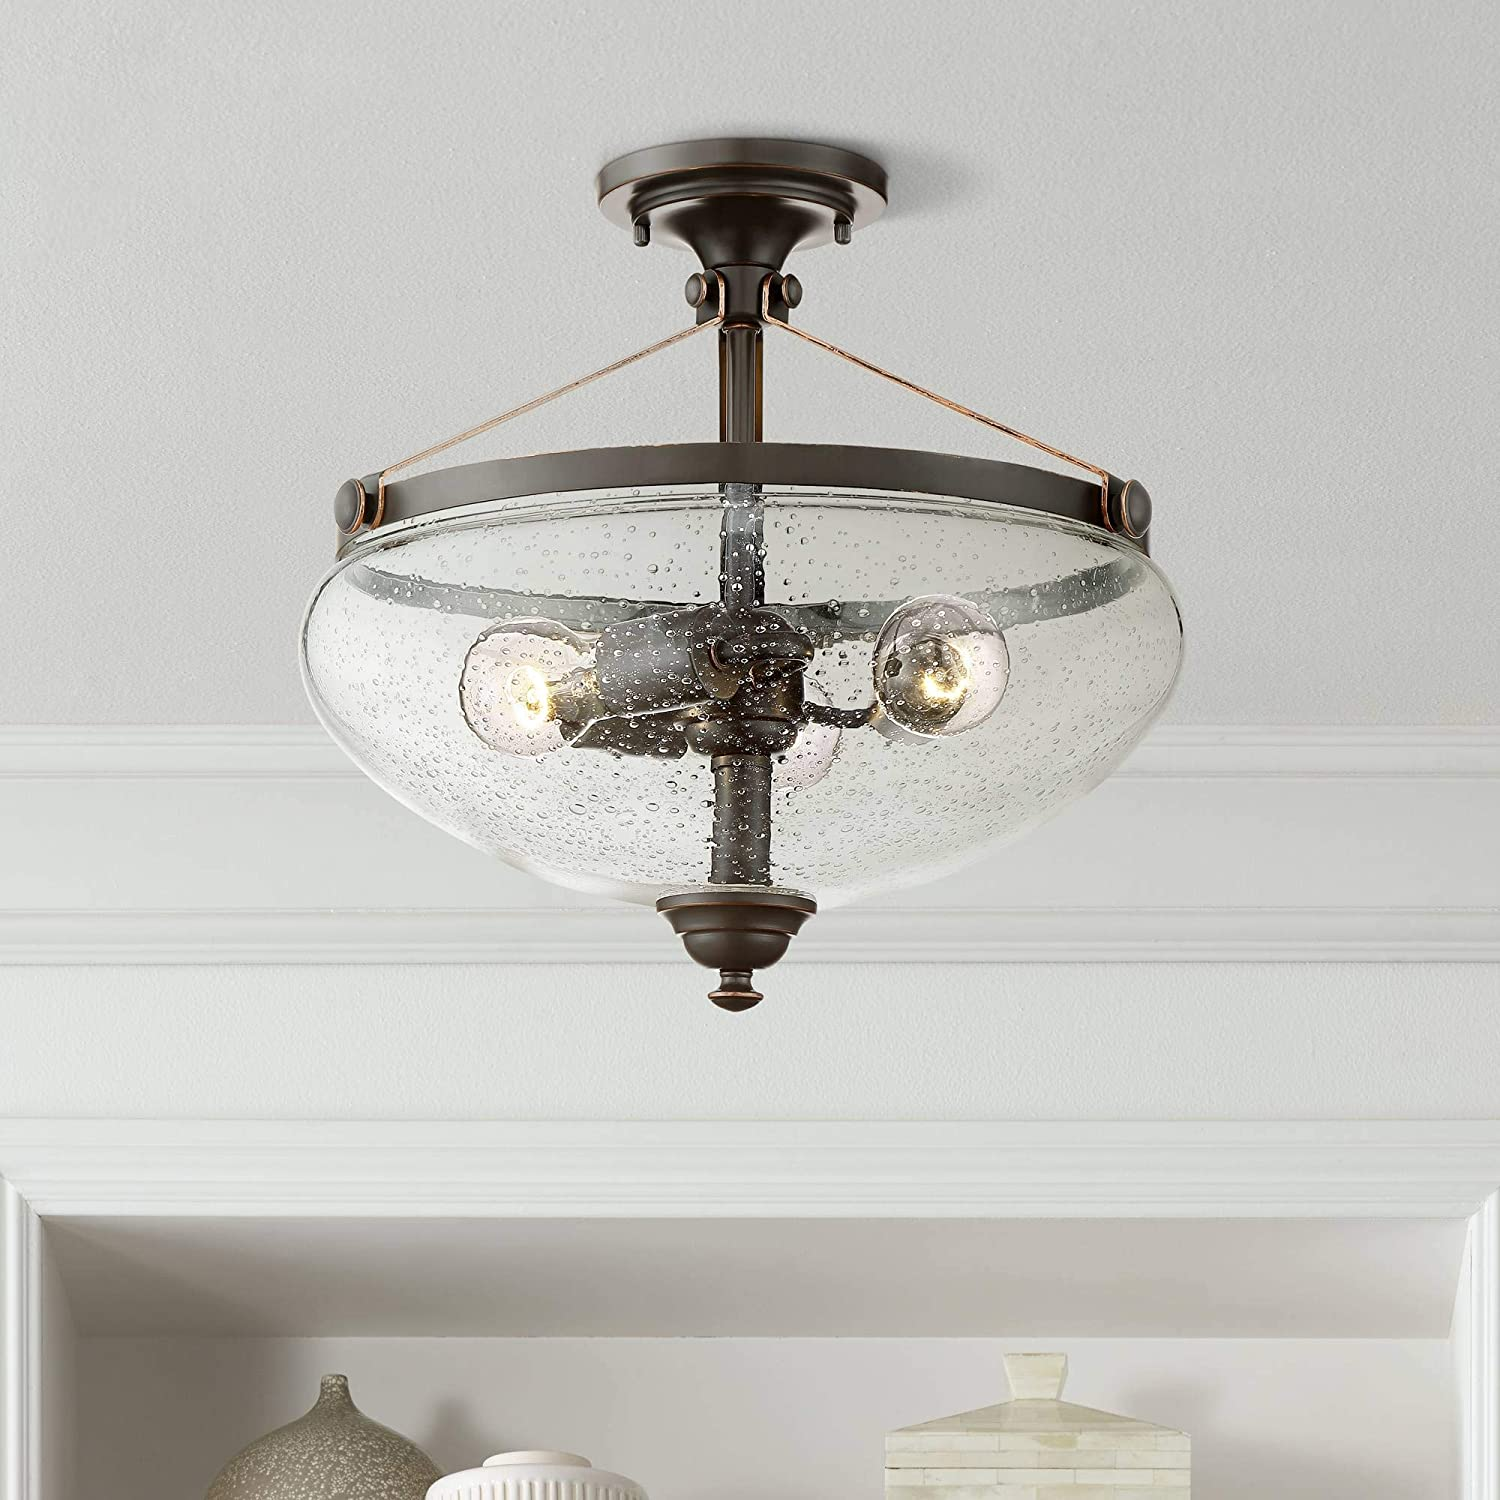 Hartfield 15 1 4 wide oil rubbed bronze ceiling light